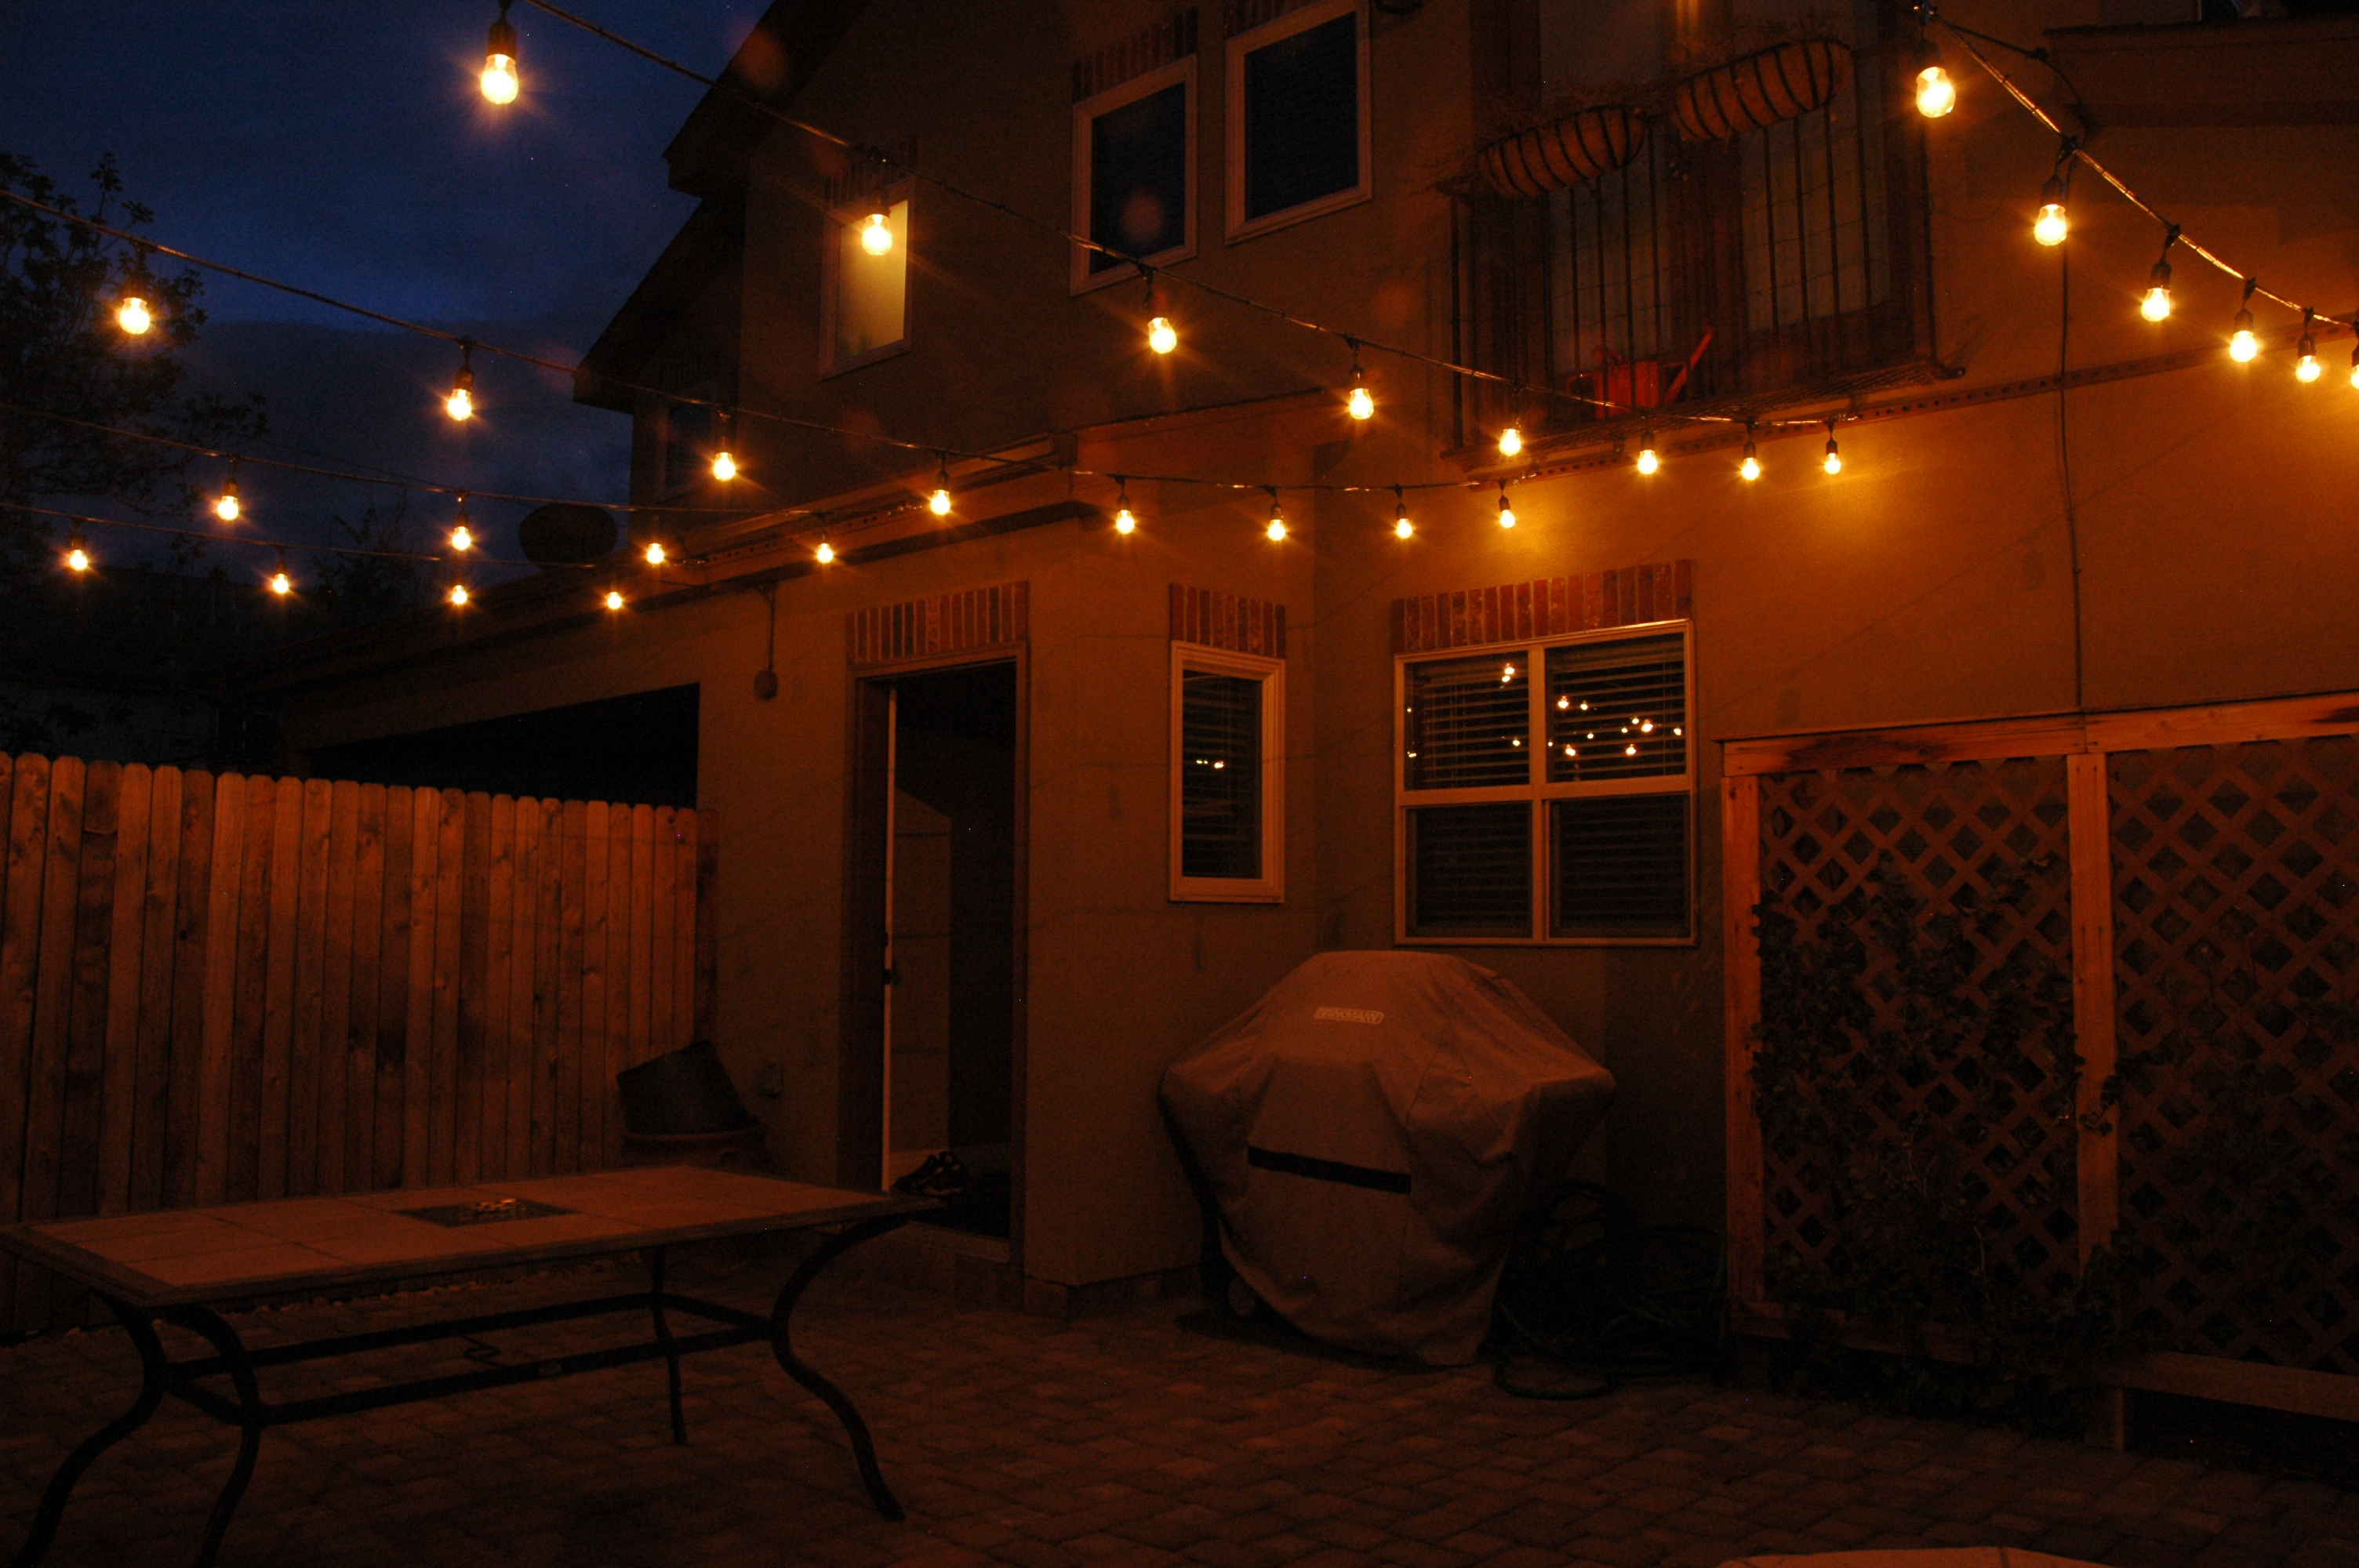 patio outdoor ideas lighting of lanterns lovely inspirational apartment candles string small tropical plants lights